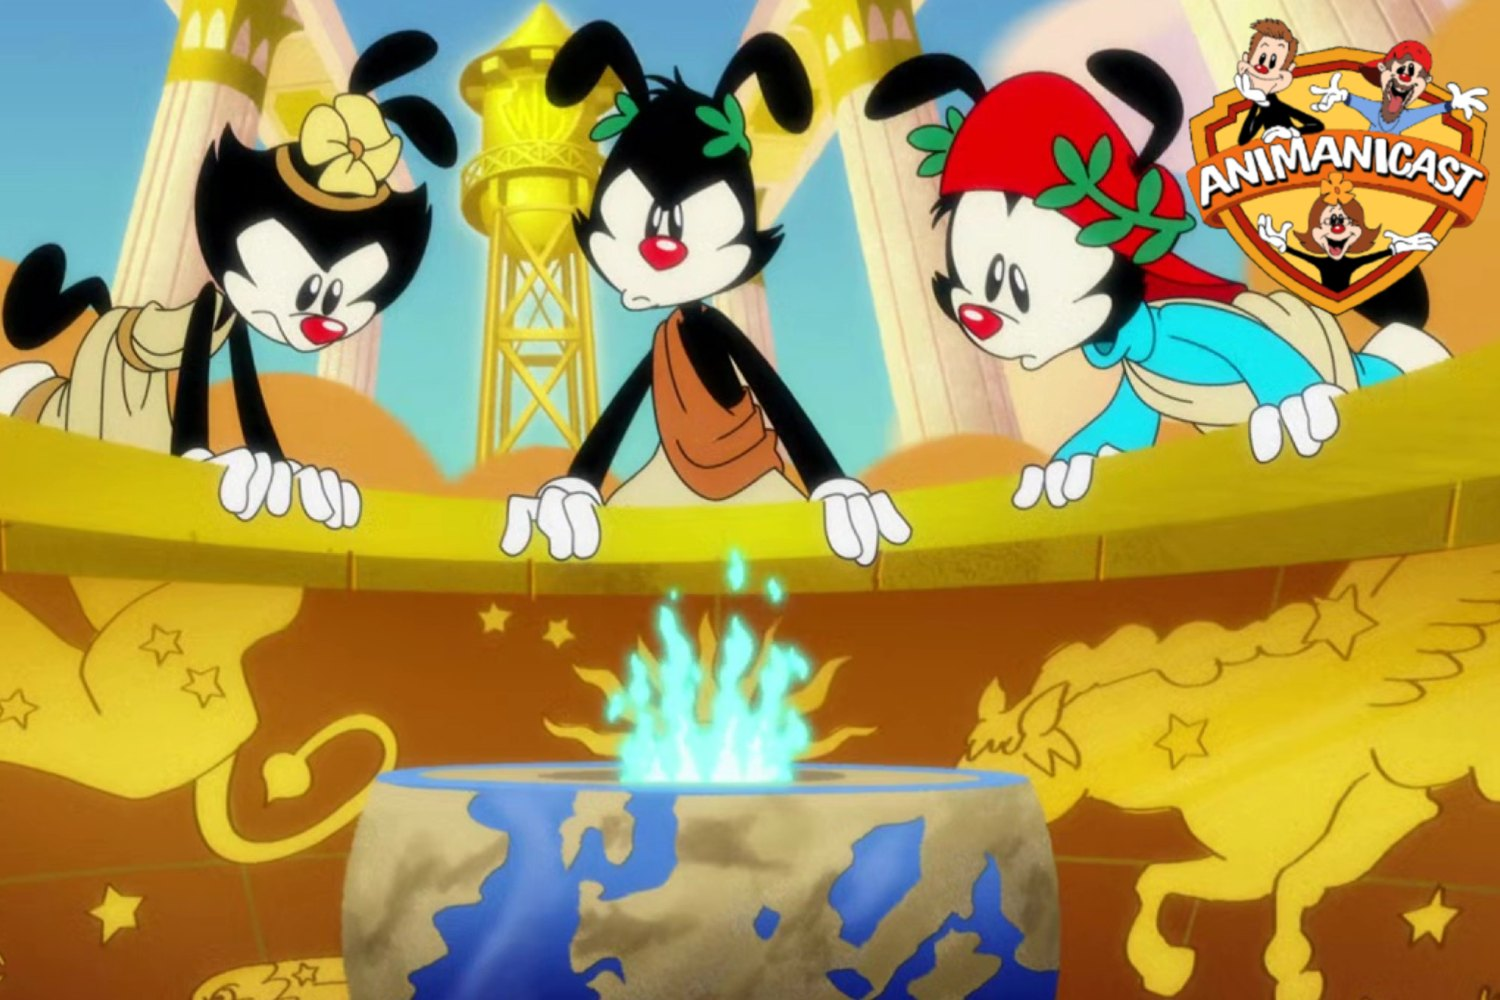 Animaniacs Reboot Episode 2